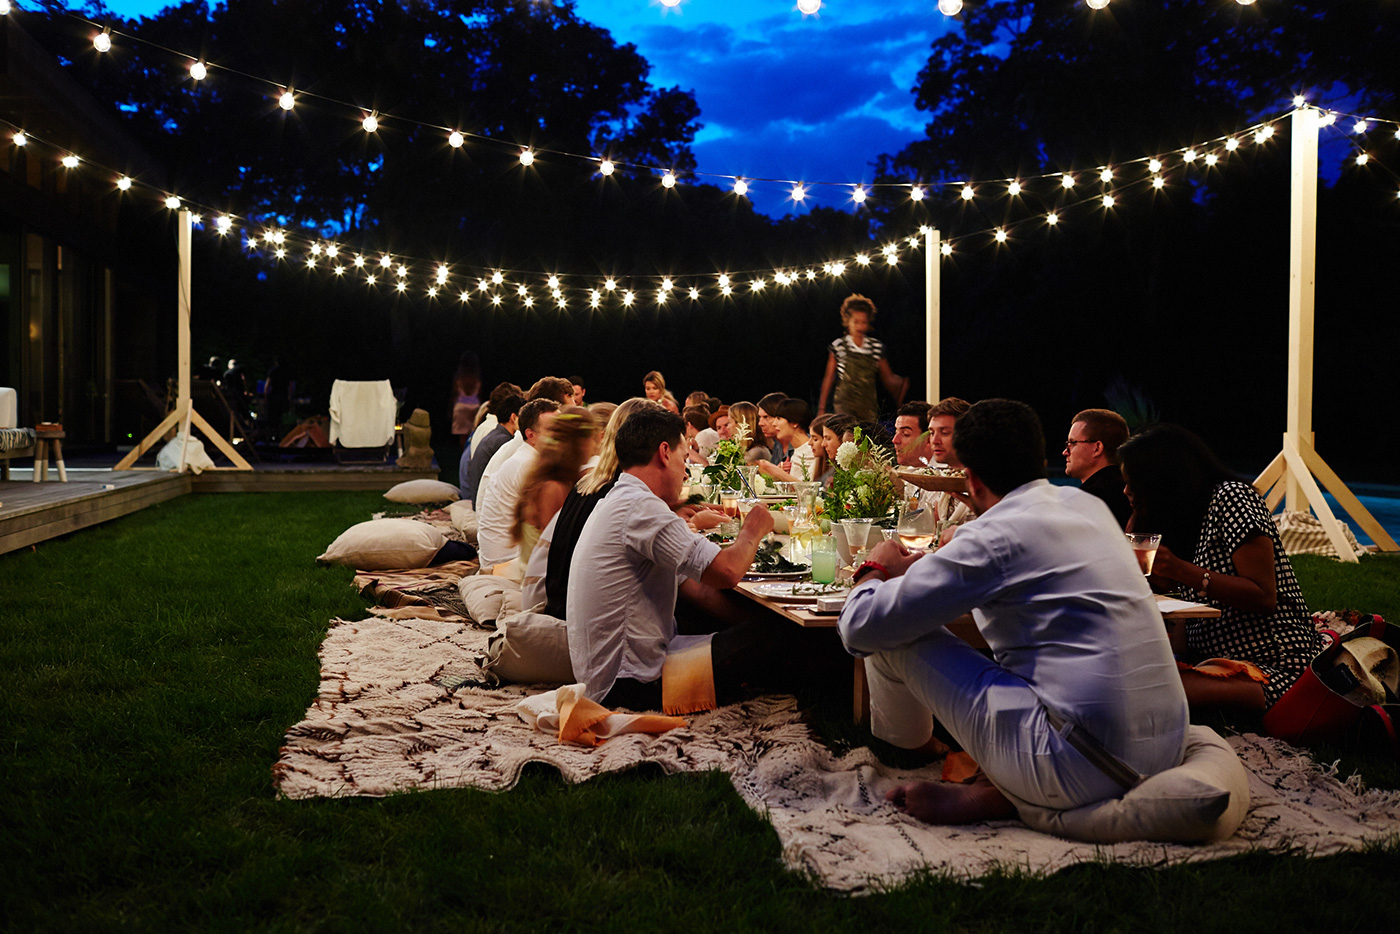 cointreau_la_maison_bar_amagansett_summer_evening_dinner_party_cocktails_entertaining_inspiration_chef_jeff_schwarz_tablescape_outdoor_setting_flowers_herbs_rustic_moroccan_rugs_string_l.jpg